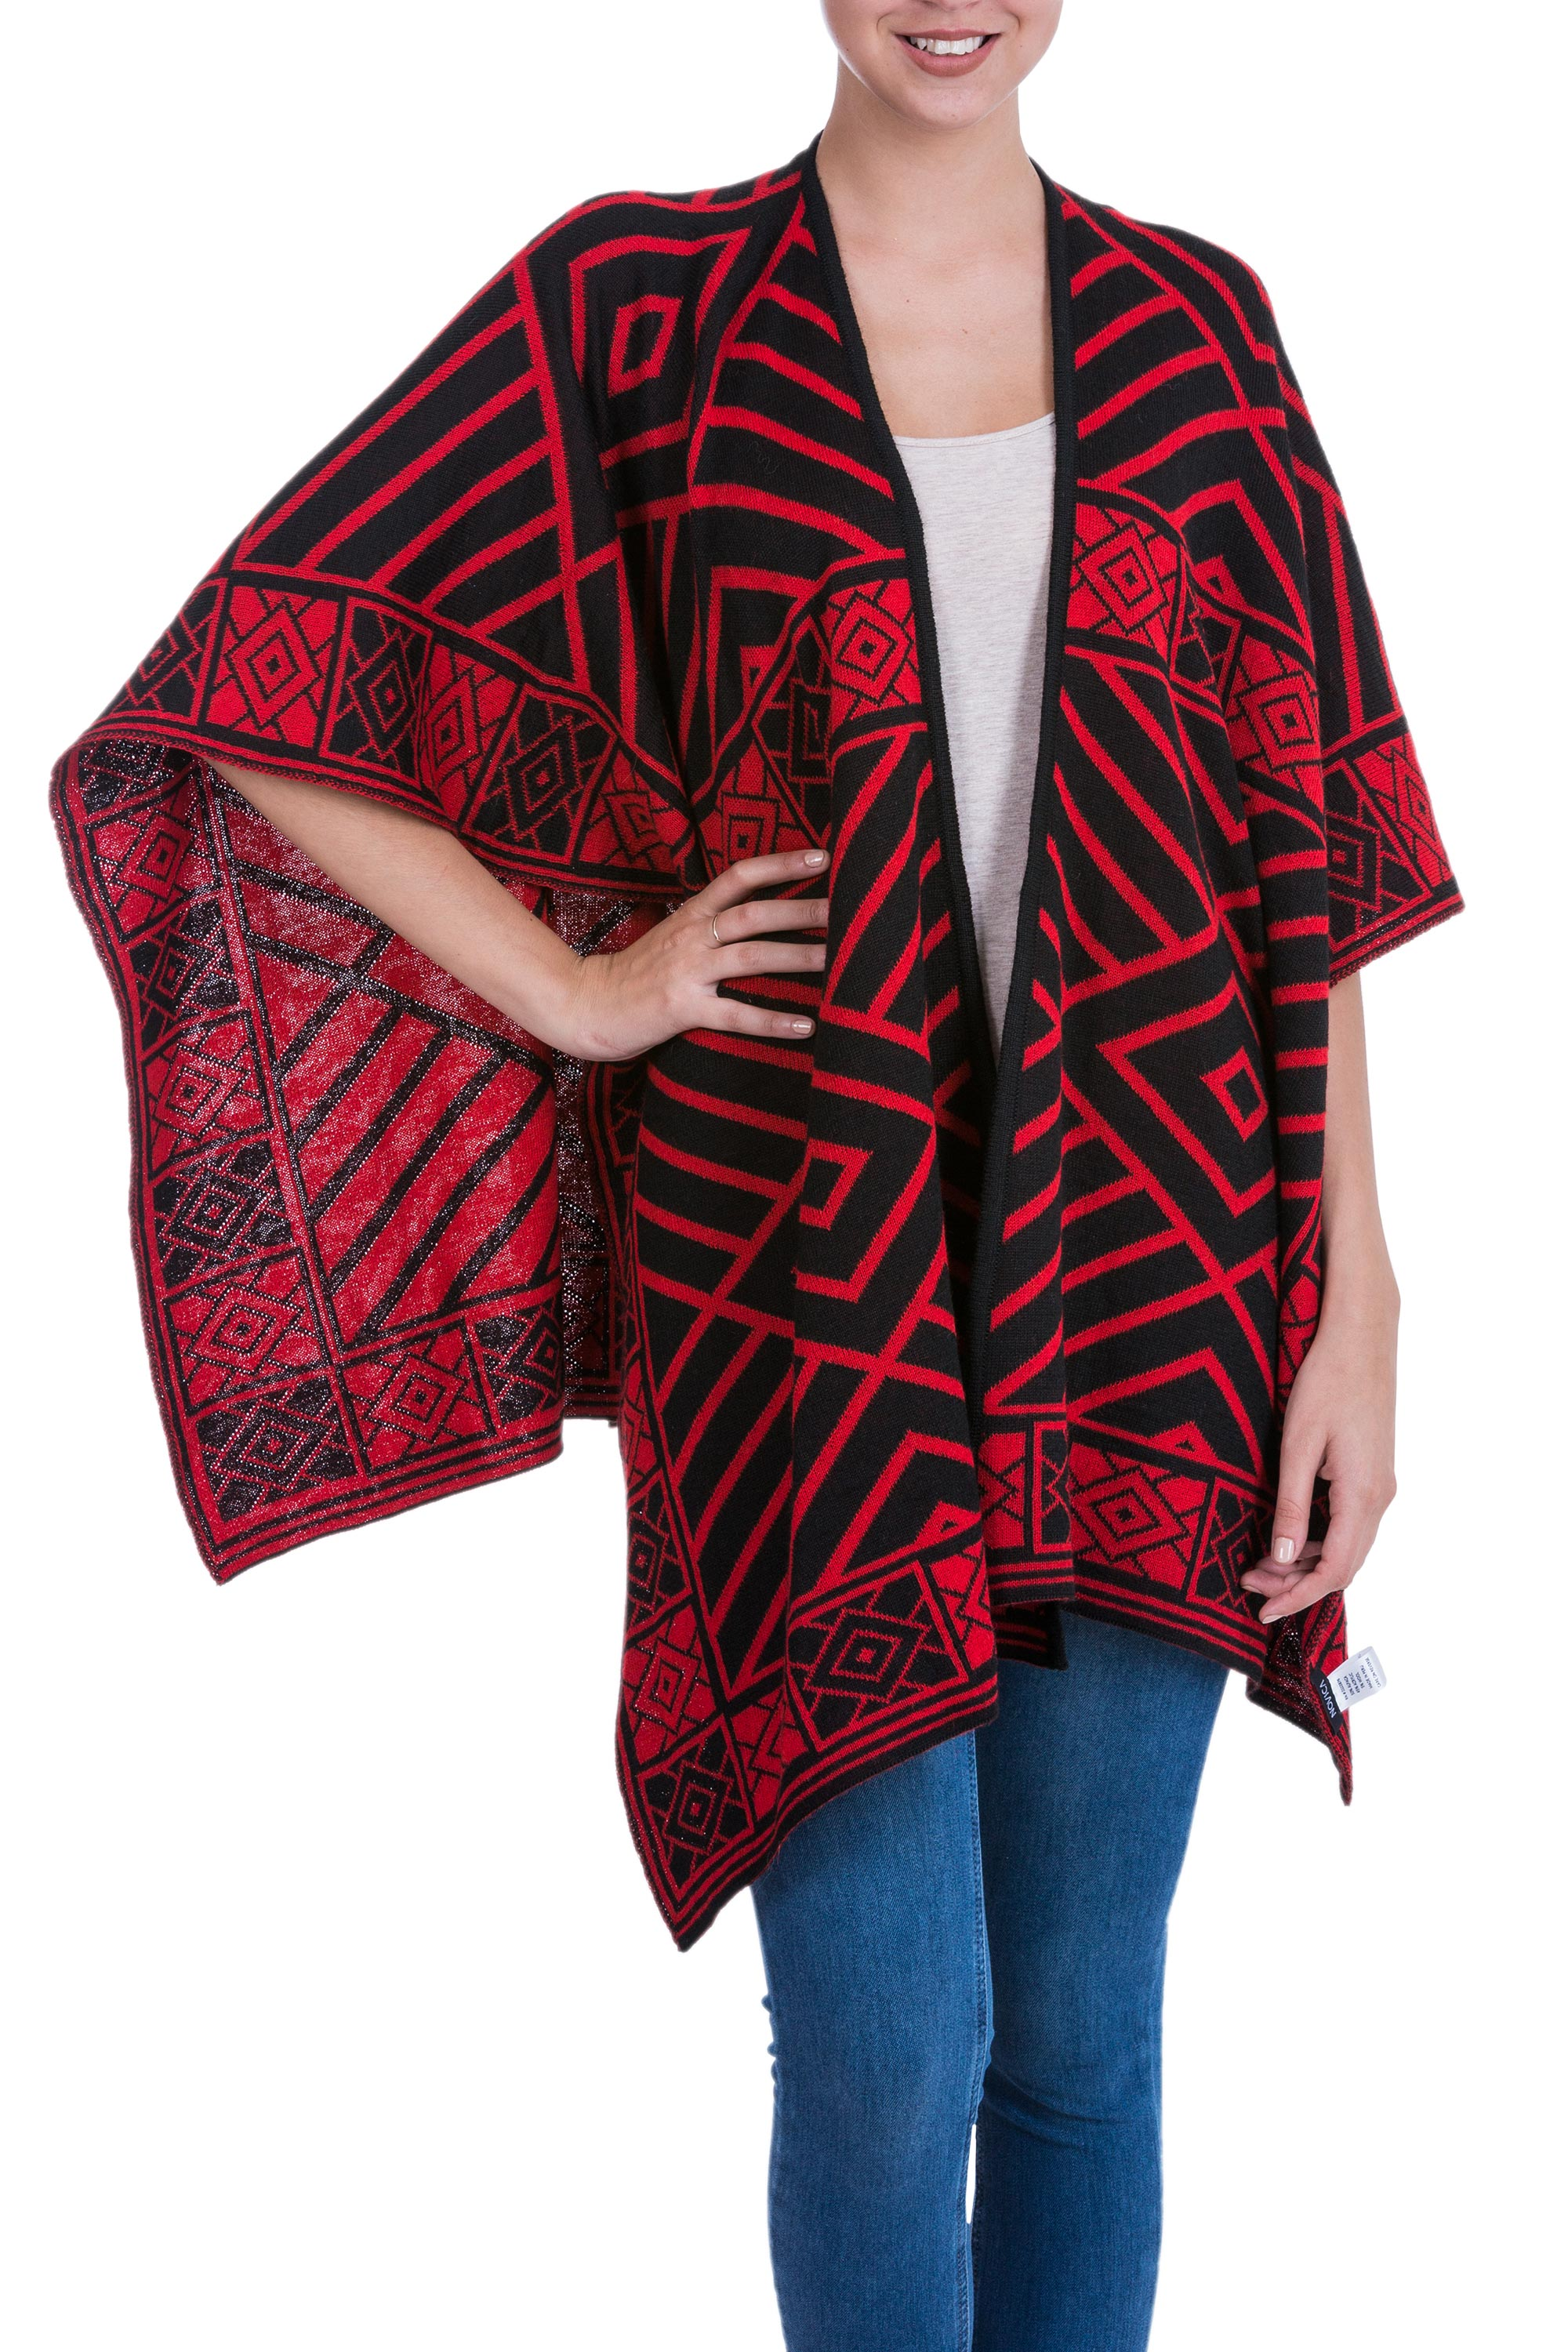 ruanas, women fashion Reversible Alpaca Blend Andean Red and Black Ruana Cloak, 'Inca Ruby' wraps and ruanas